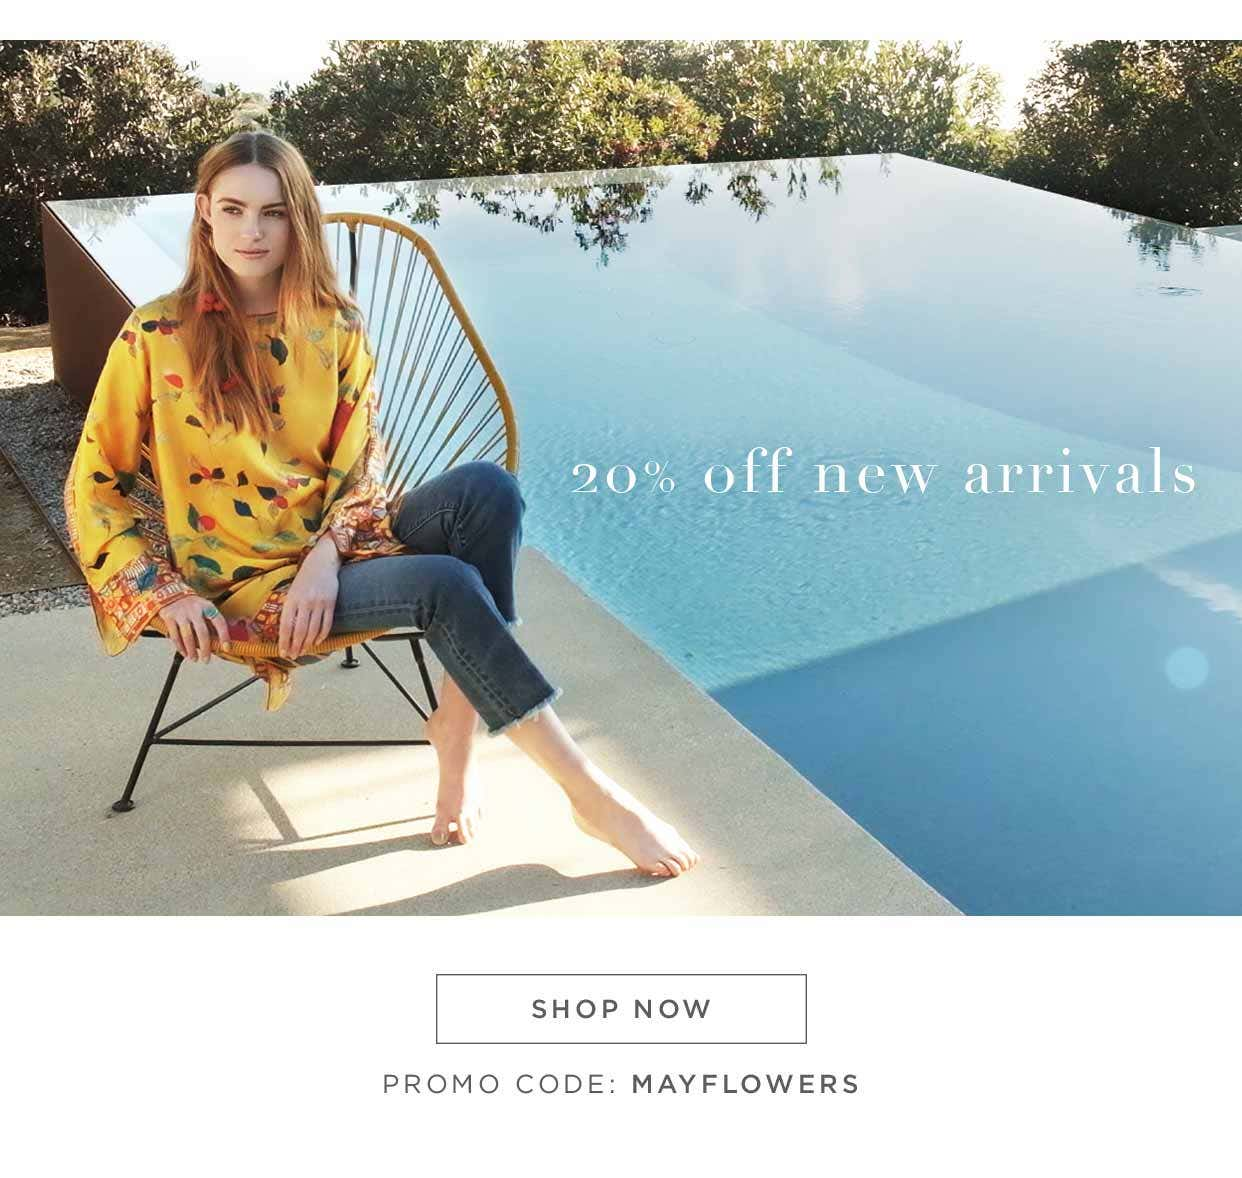 20% Off New Arrivals - Shop now - Promo Code: MAYFLOWERS